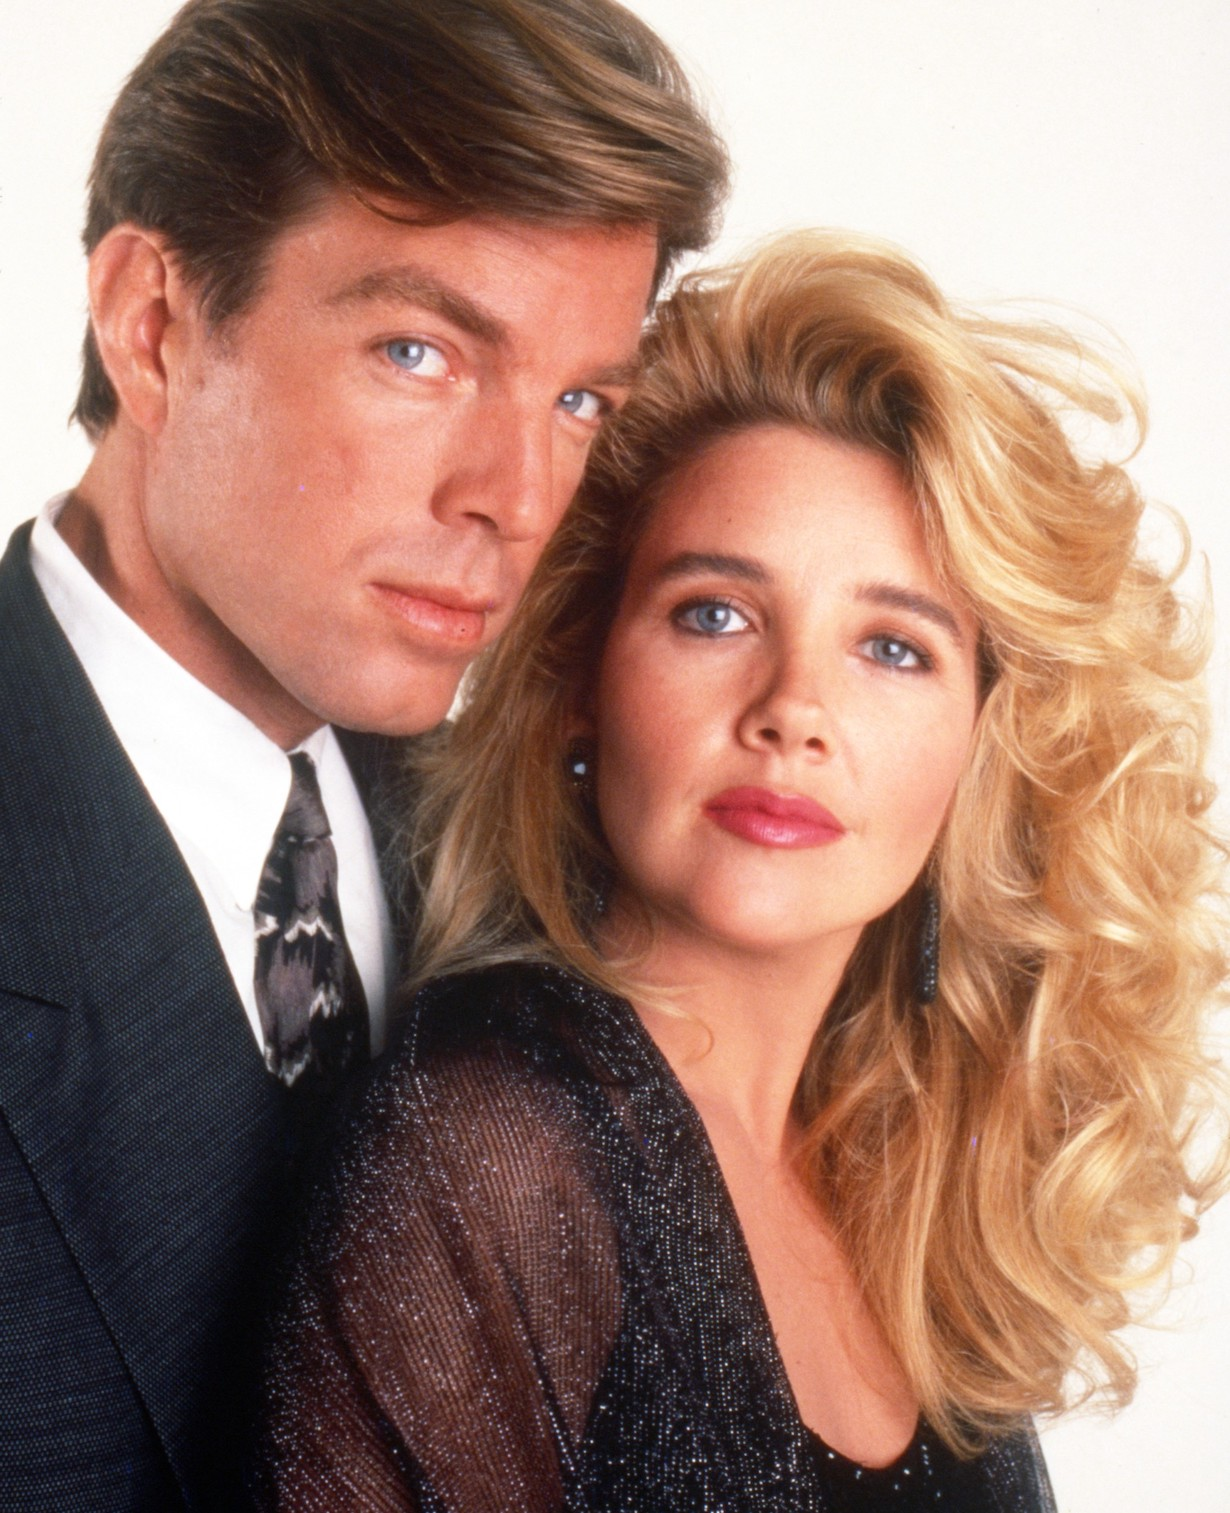 yr jack nikki old gallery THE YOUNG AND THE RESTLESS, from left: Melody Thomas Scott, Peter Bergman, 1990s, 1973-, ph: Monty Brinton /© CBS /Courtesy Everett Collection